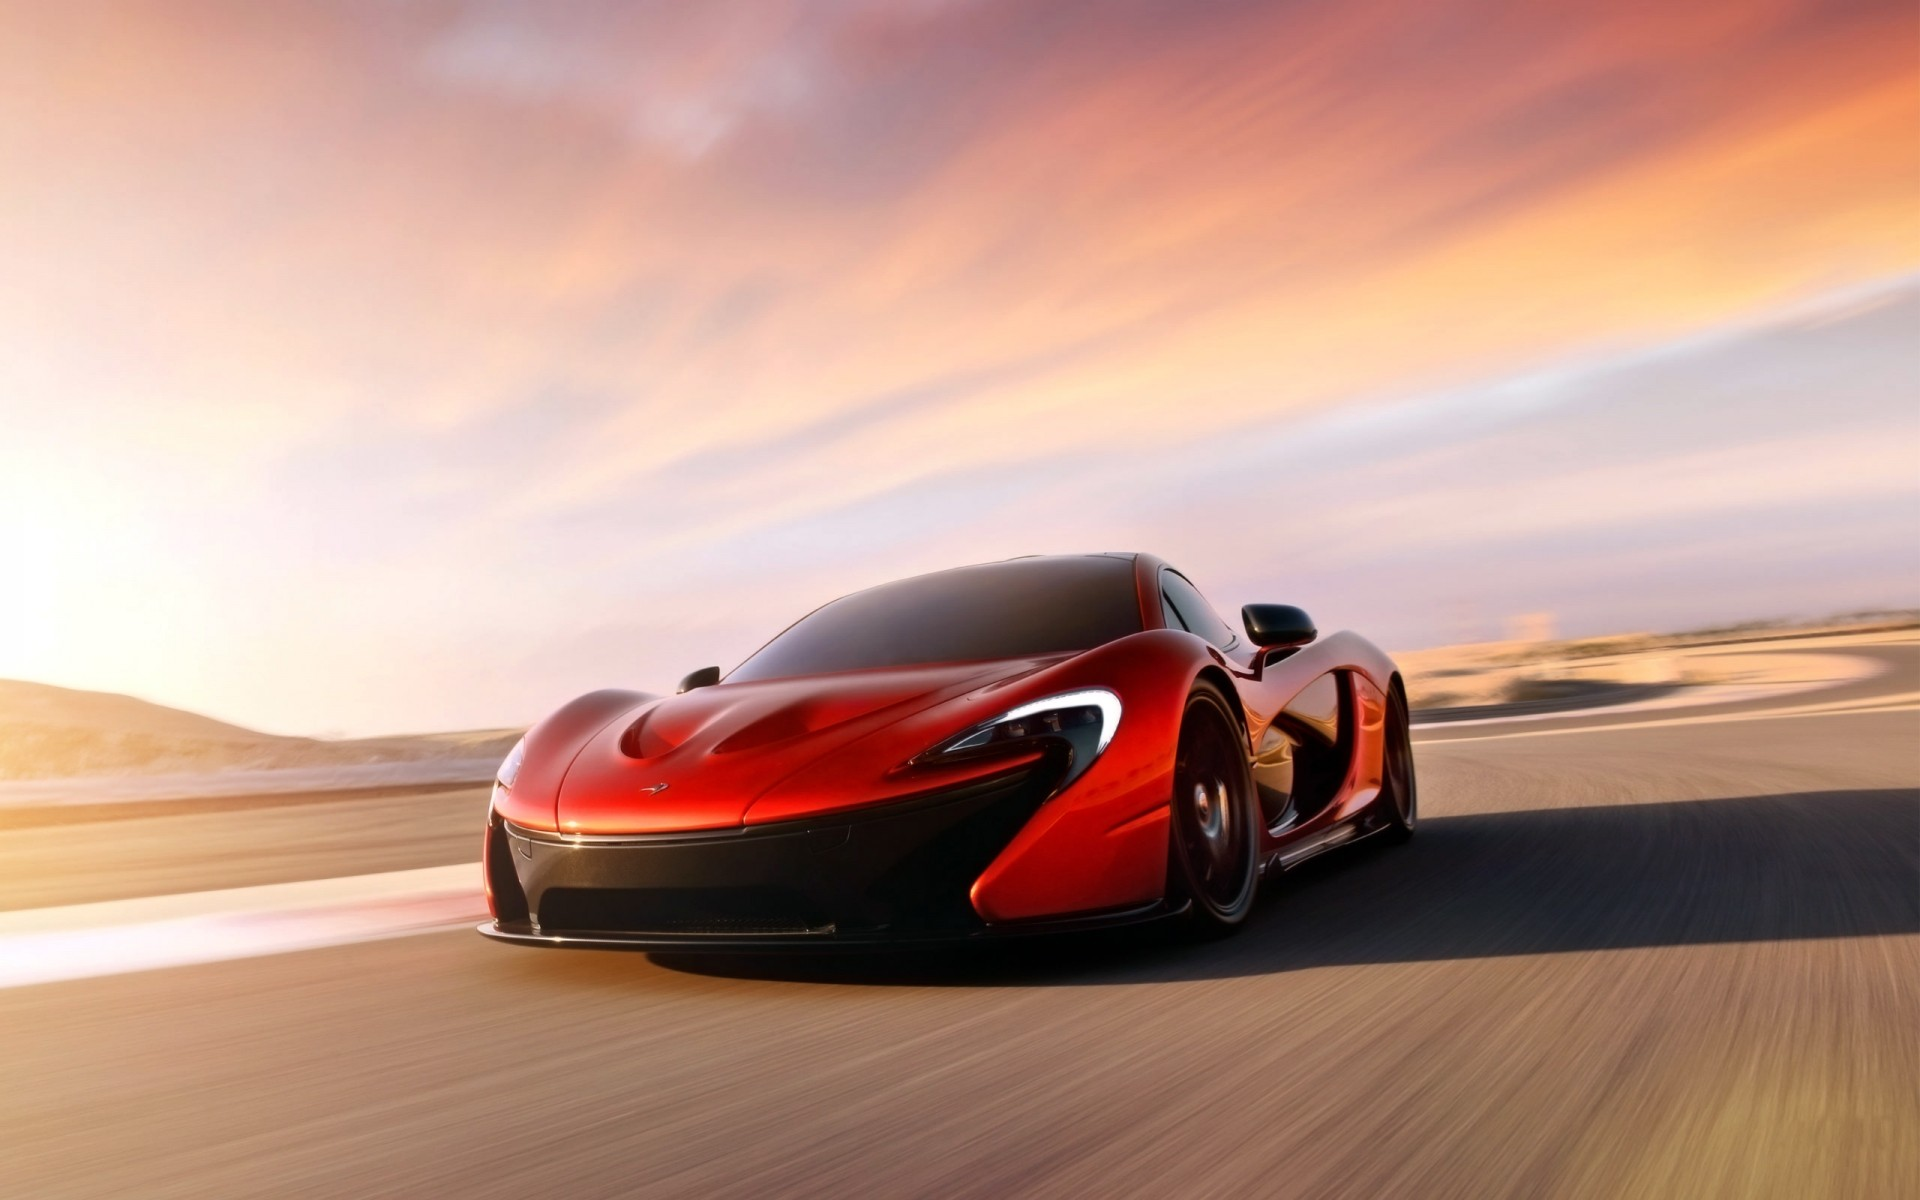 concept cars car hurry vehicle blur fast asphalt action transportation system race pavement sunset wheel blacktop mclaren p1